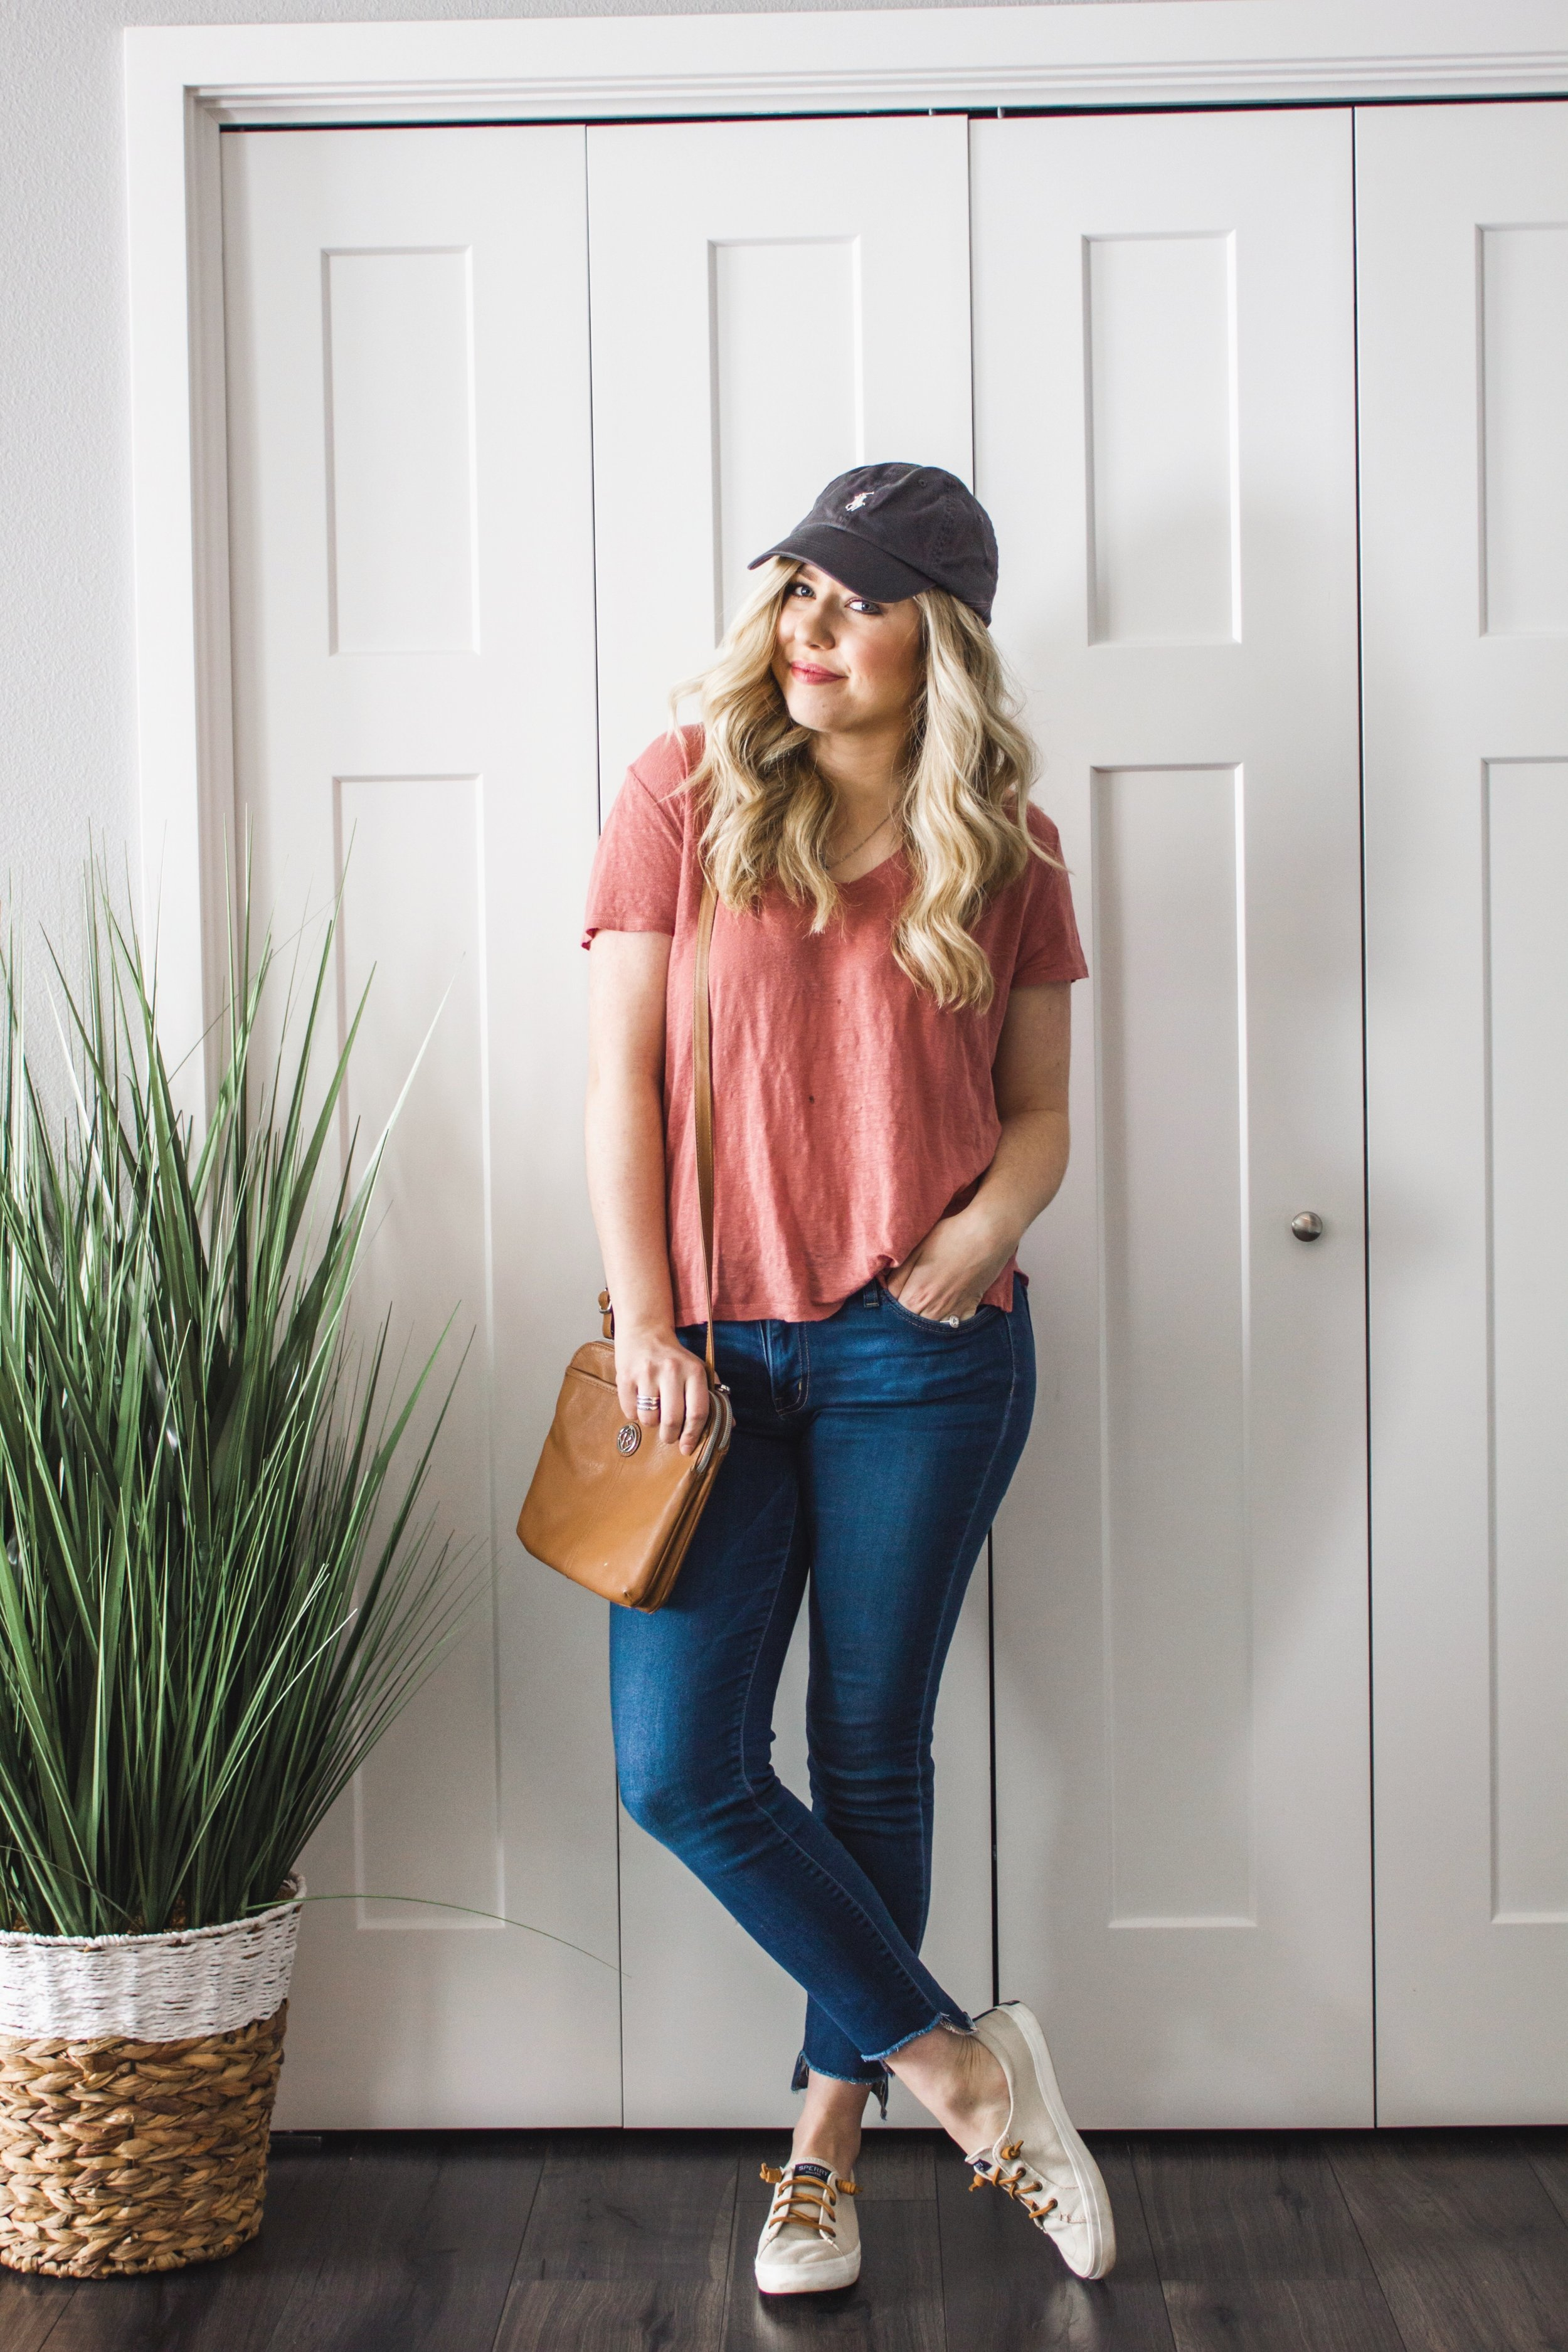 casual-jeans-and-tee-outfit-spring-04.JPG